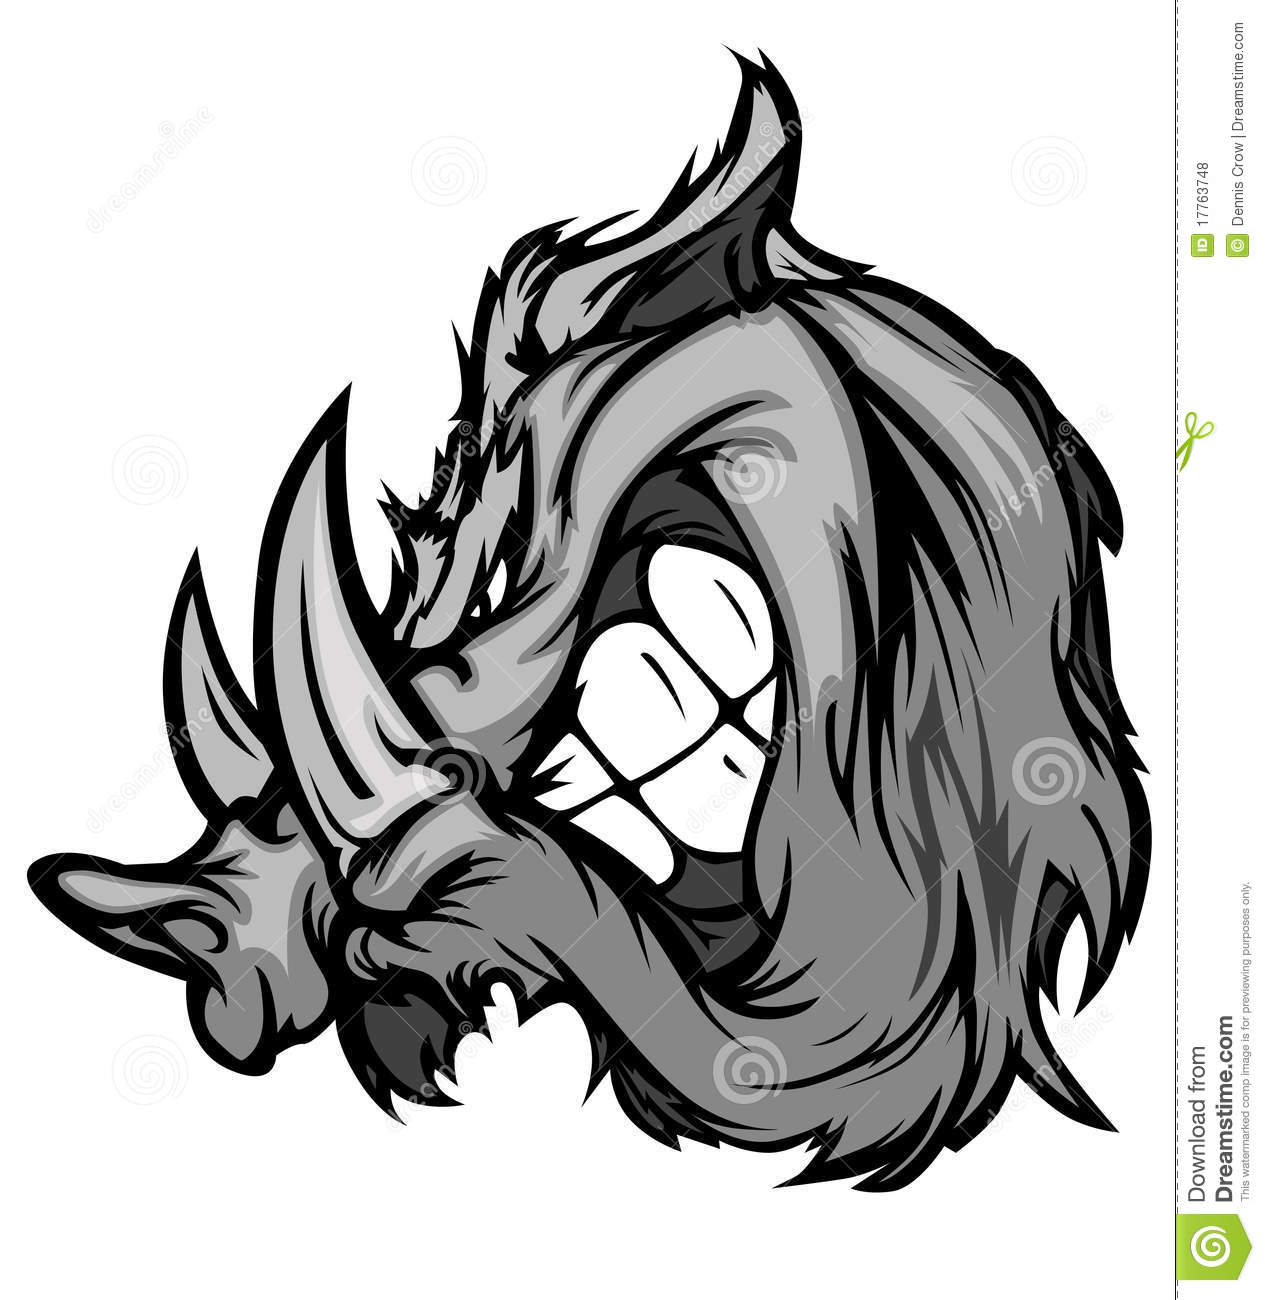 Boar Razorback Mascot Vector Logo Royalty Free Stock Photos - Image ...